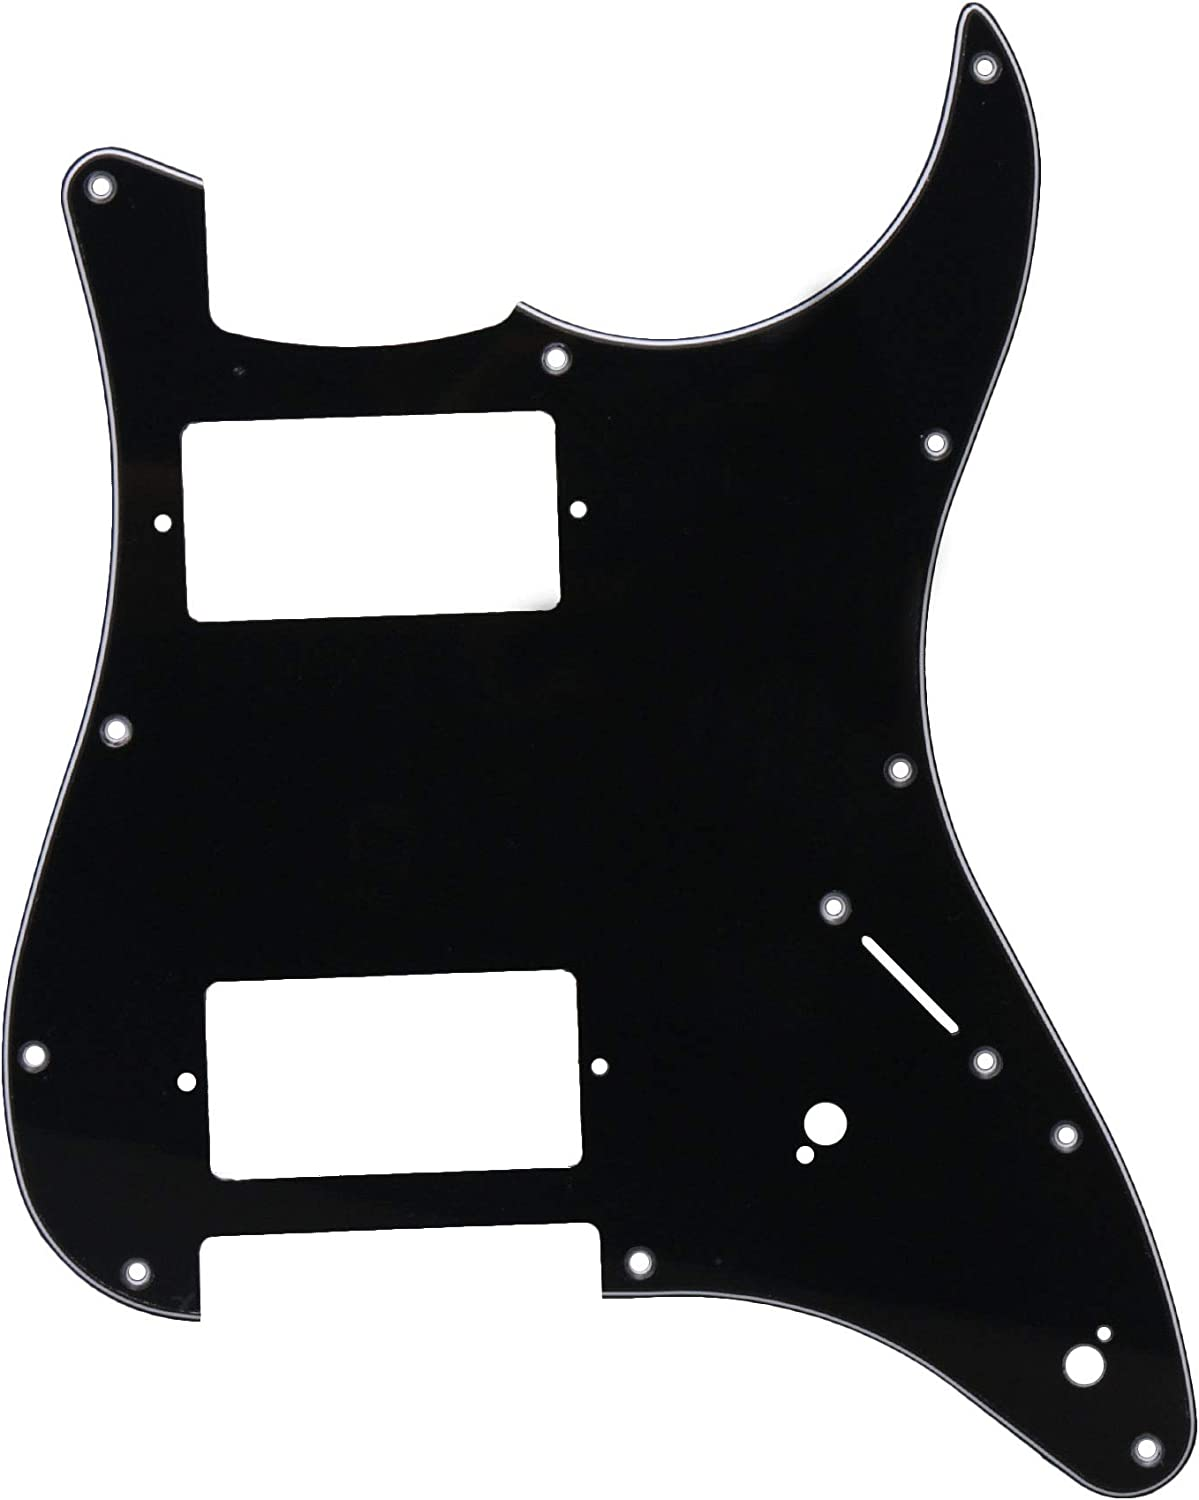 Bstinay Black 3 Ply 11 Challenge the lowest price of Japan ☆ Hole Beauty products Scratchplate Fo Guitar ABS Pickguard